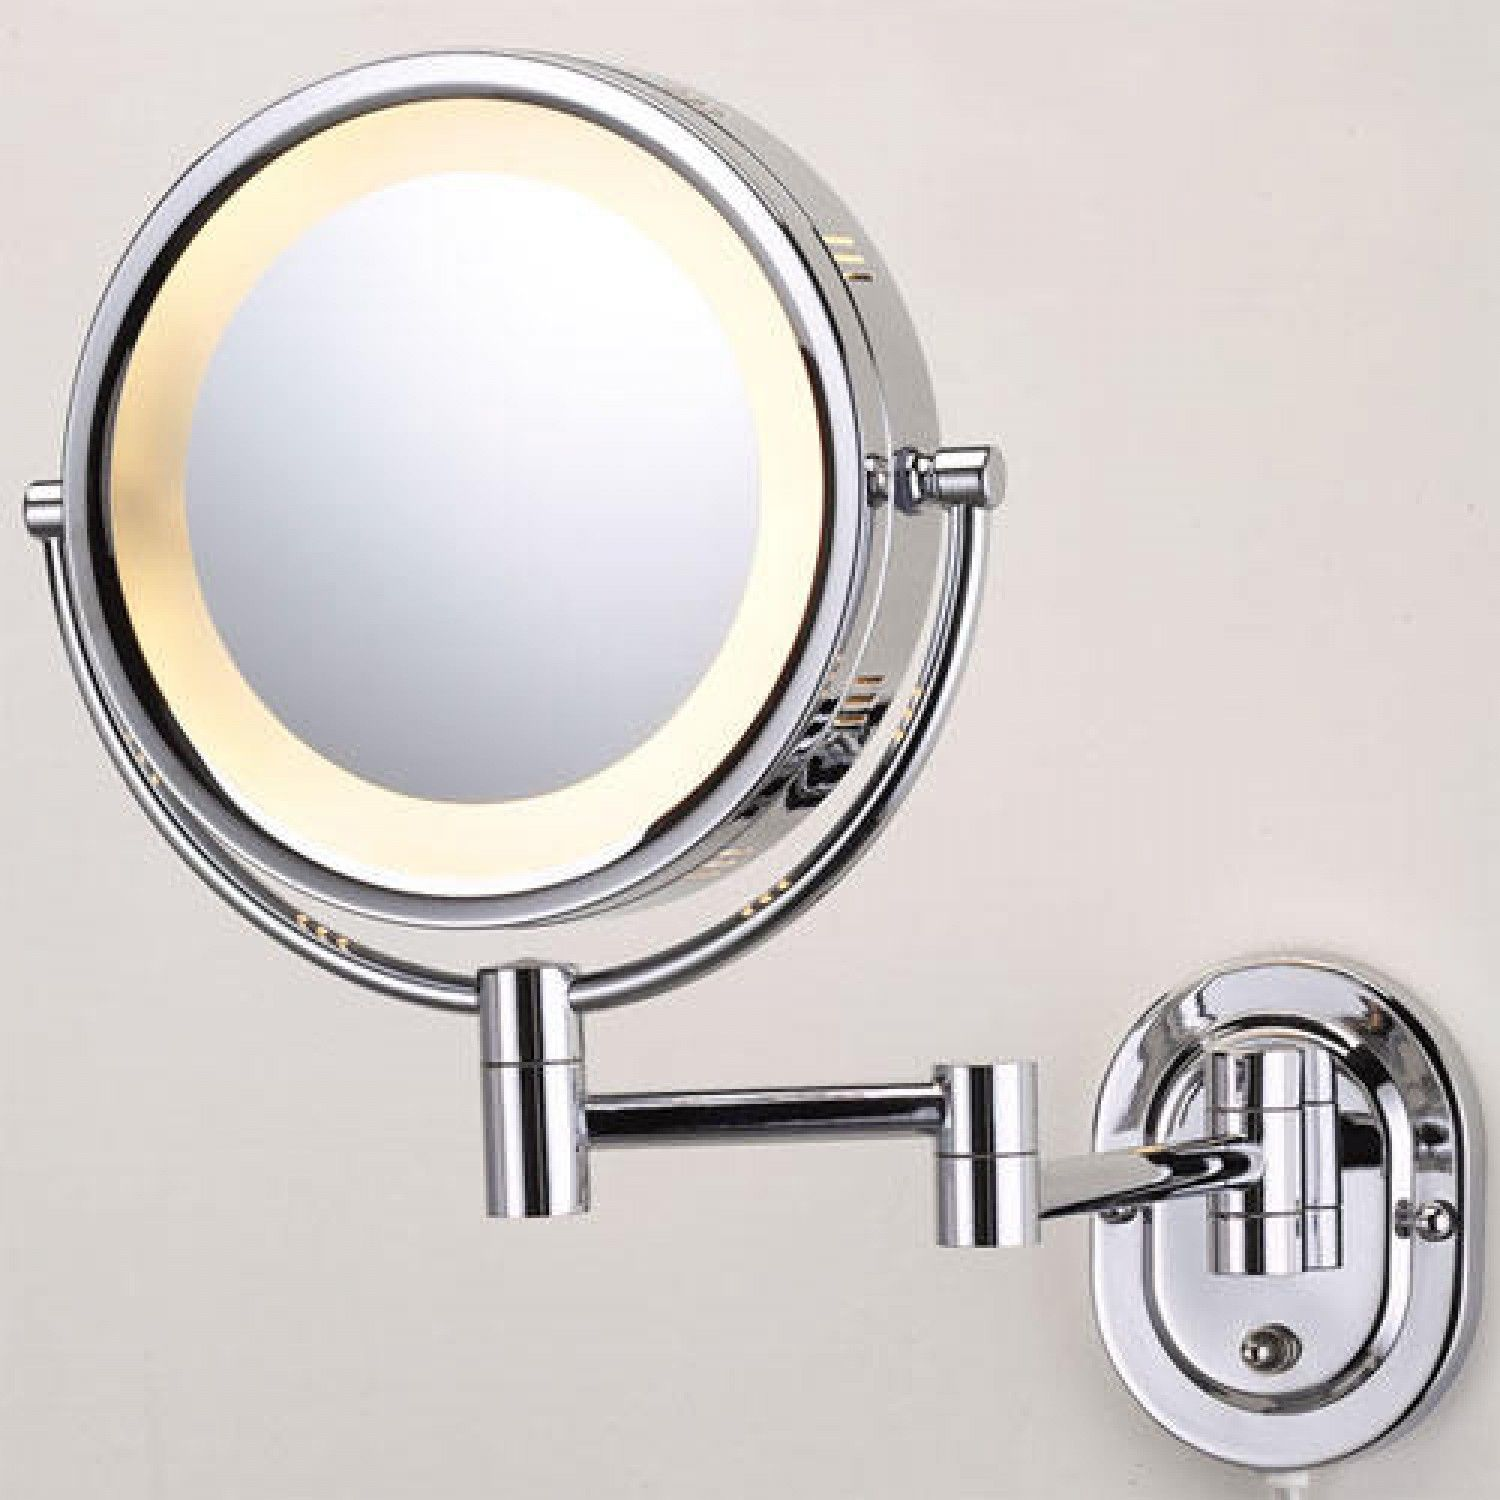 Halo Swinging Lighted Vanity Mirror Makeup Mirrors Bathroom Mirrors Bathroom Wall Mounted Makeup Mirror Makeup Mirror With Lights Mirror Wall